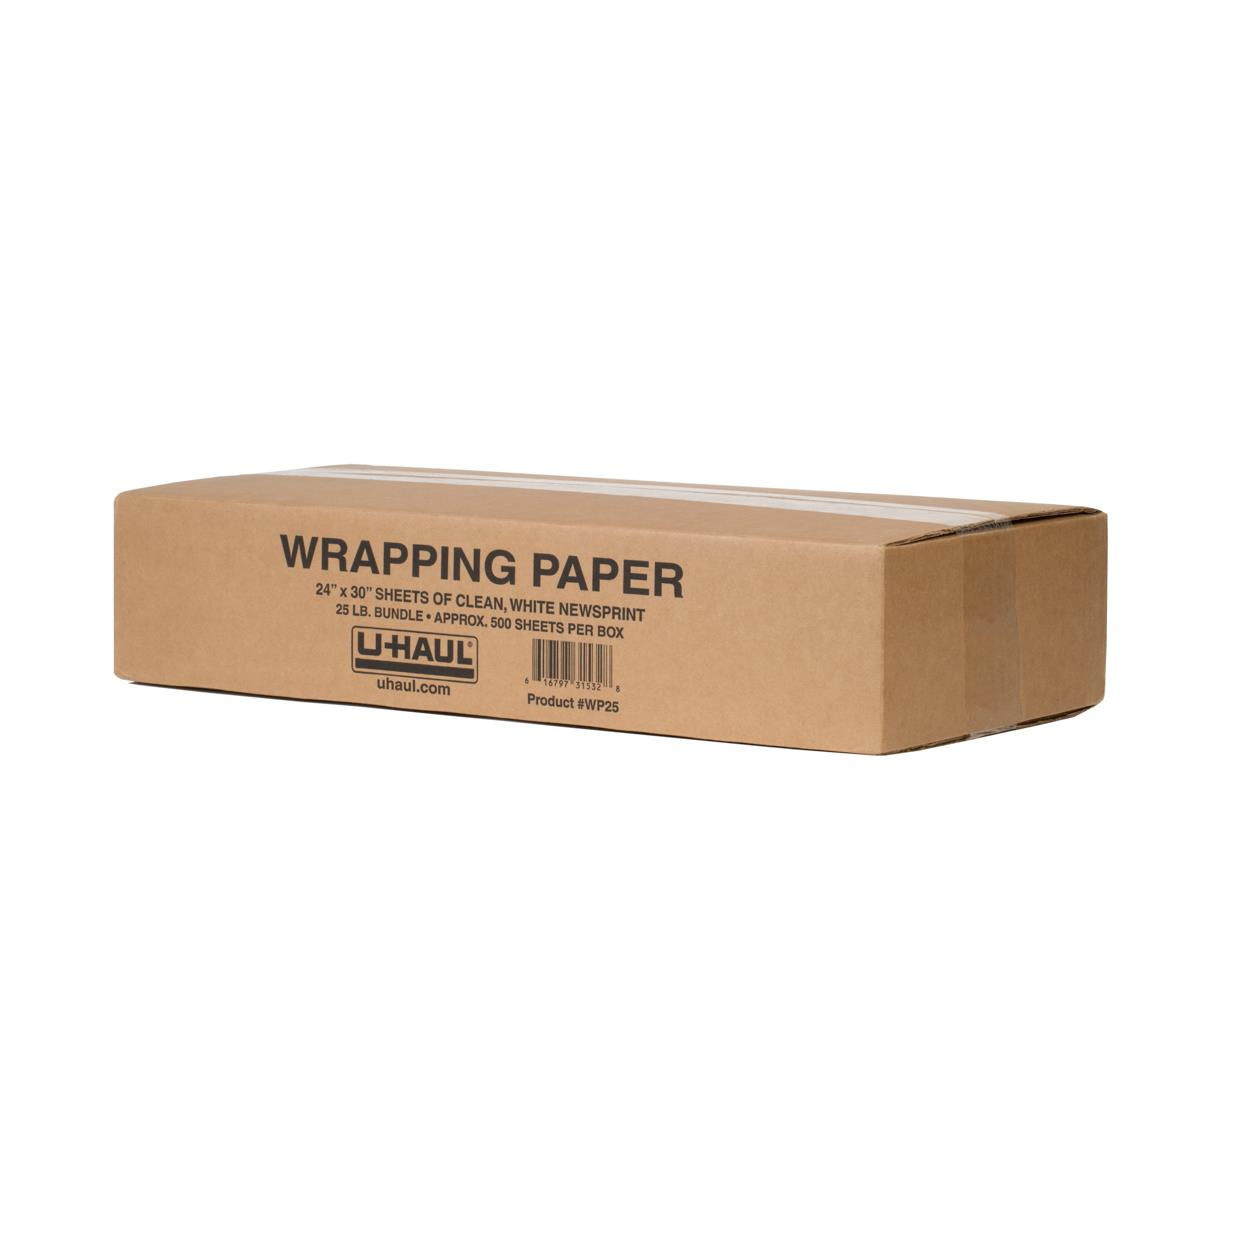 Packing-Paper-Bulk-(500-Sheets)